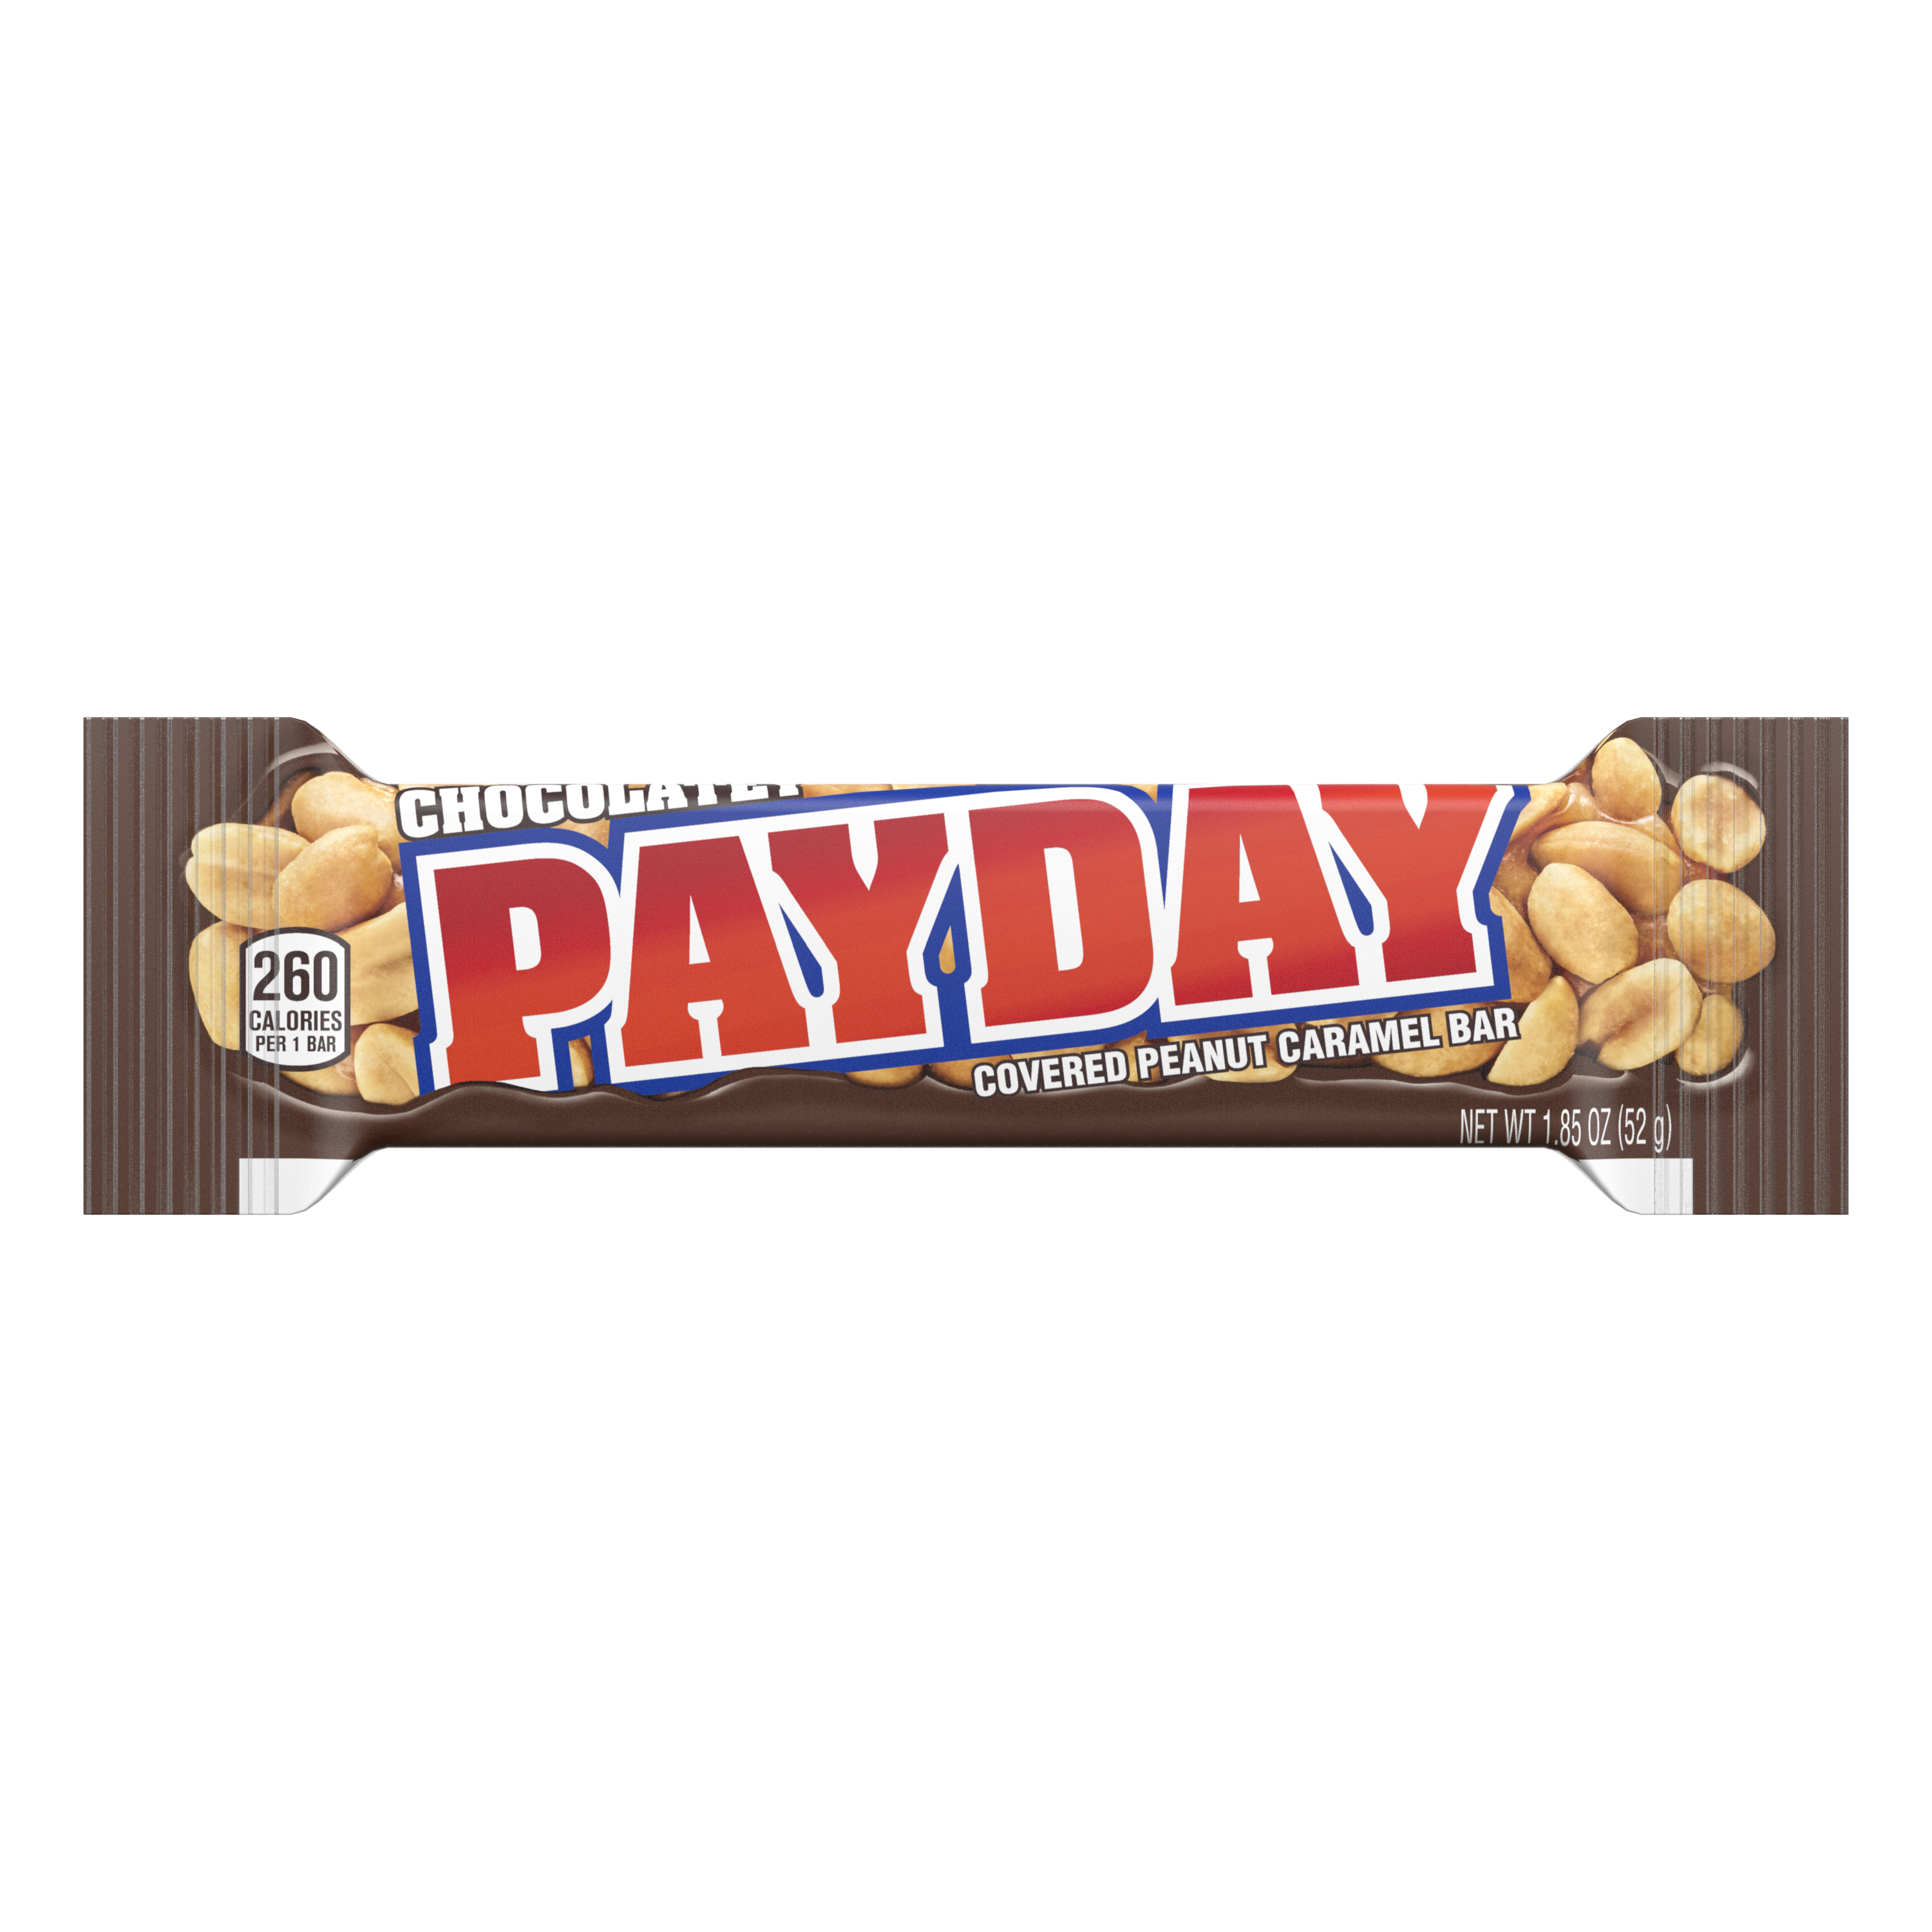 PAYDAY Chocolatey Covered Peanut and Caramel Candy Bar, 1.85 oz - Front of Package